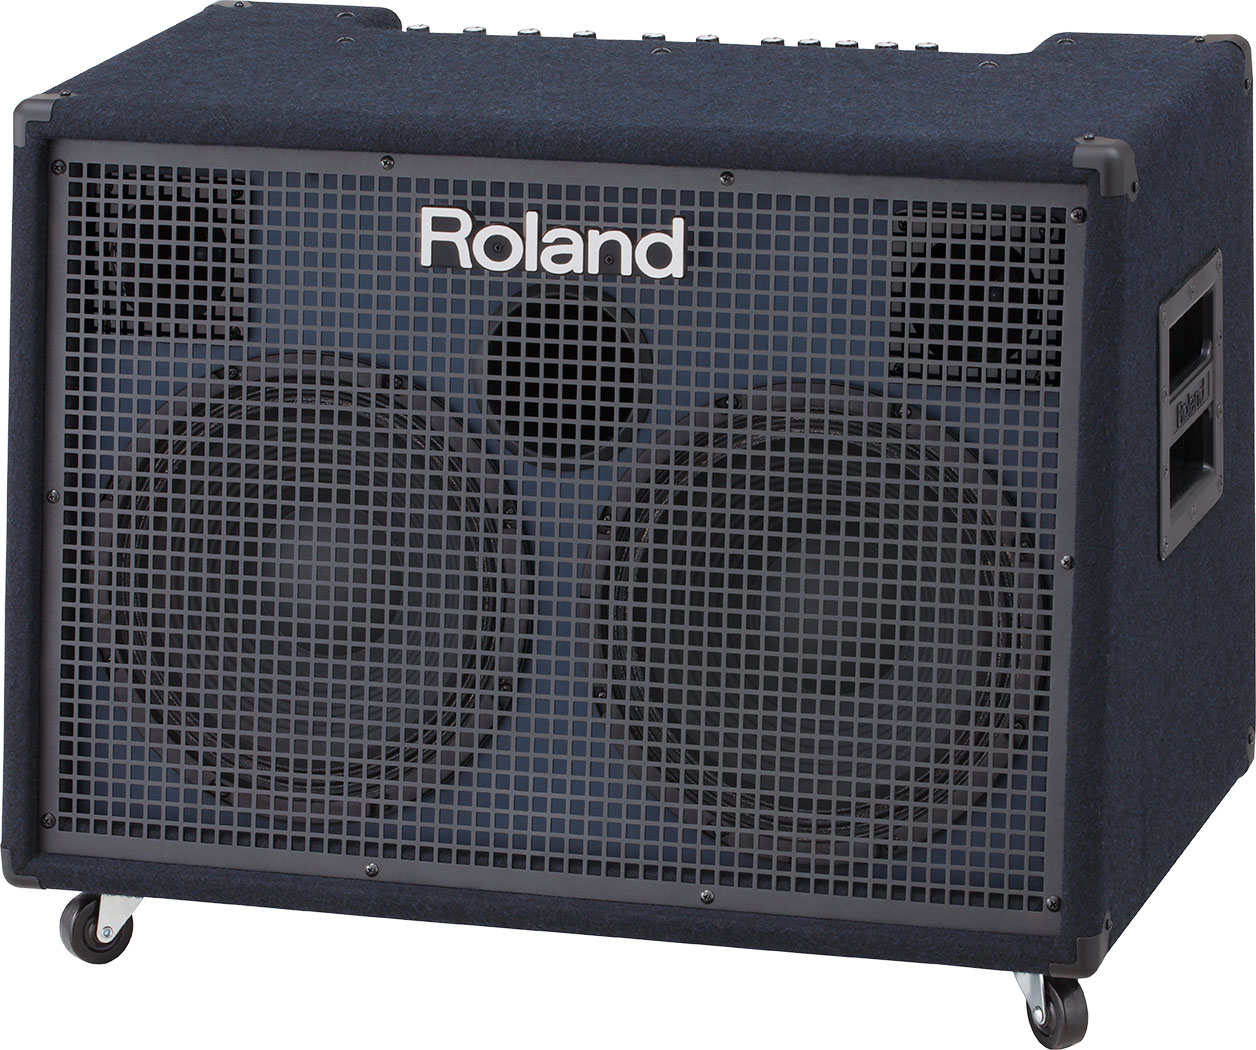 https://static.roland.com/assets/images/products/gallery/kc-990_angle_gal.jpg